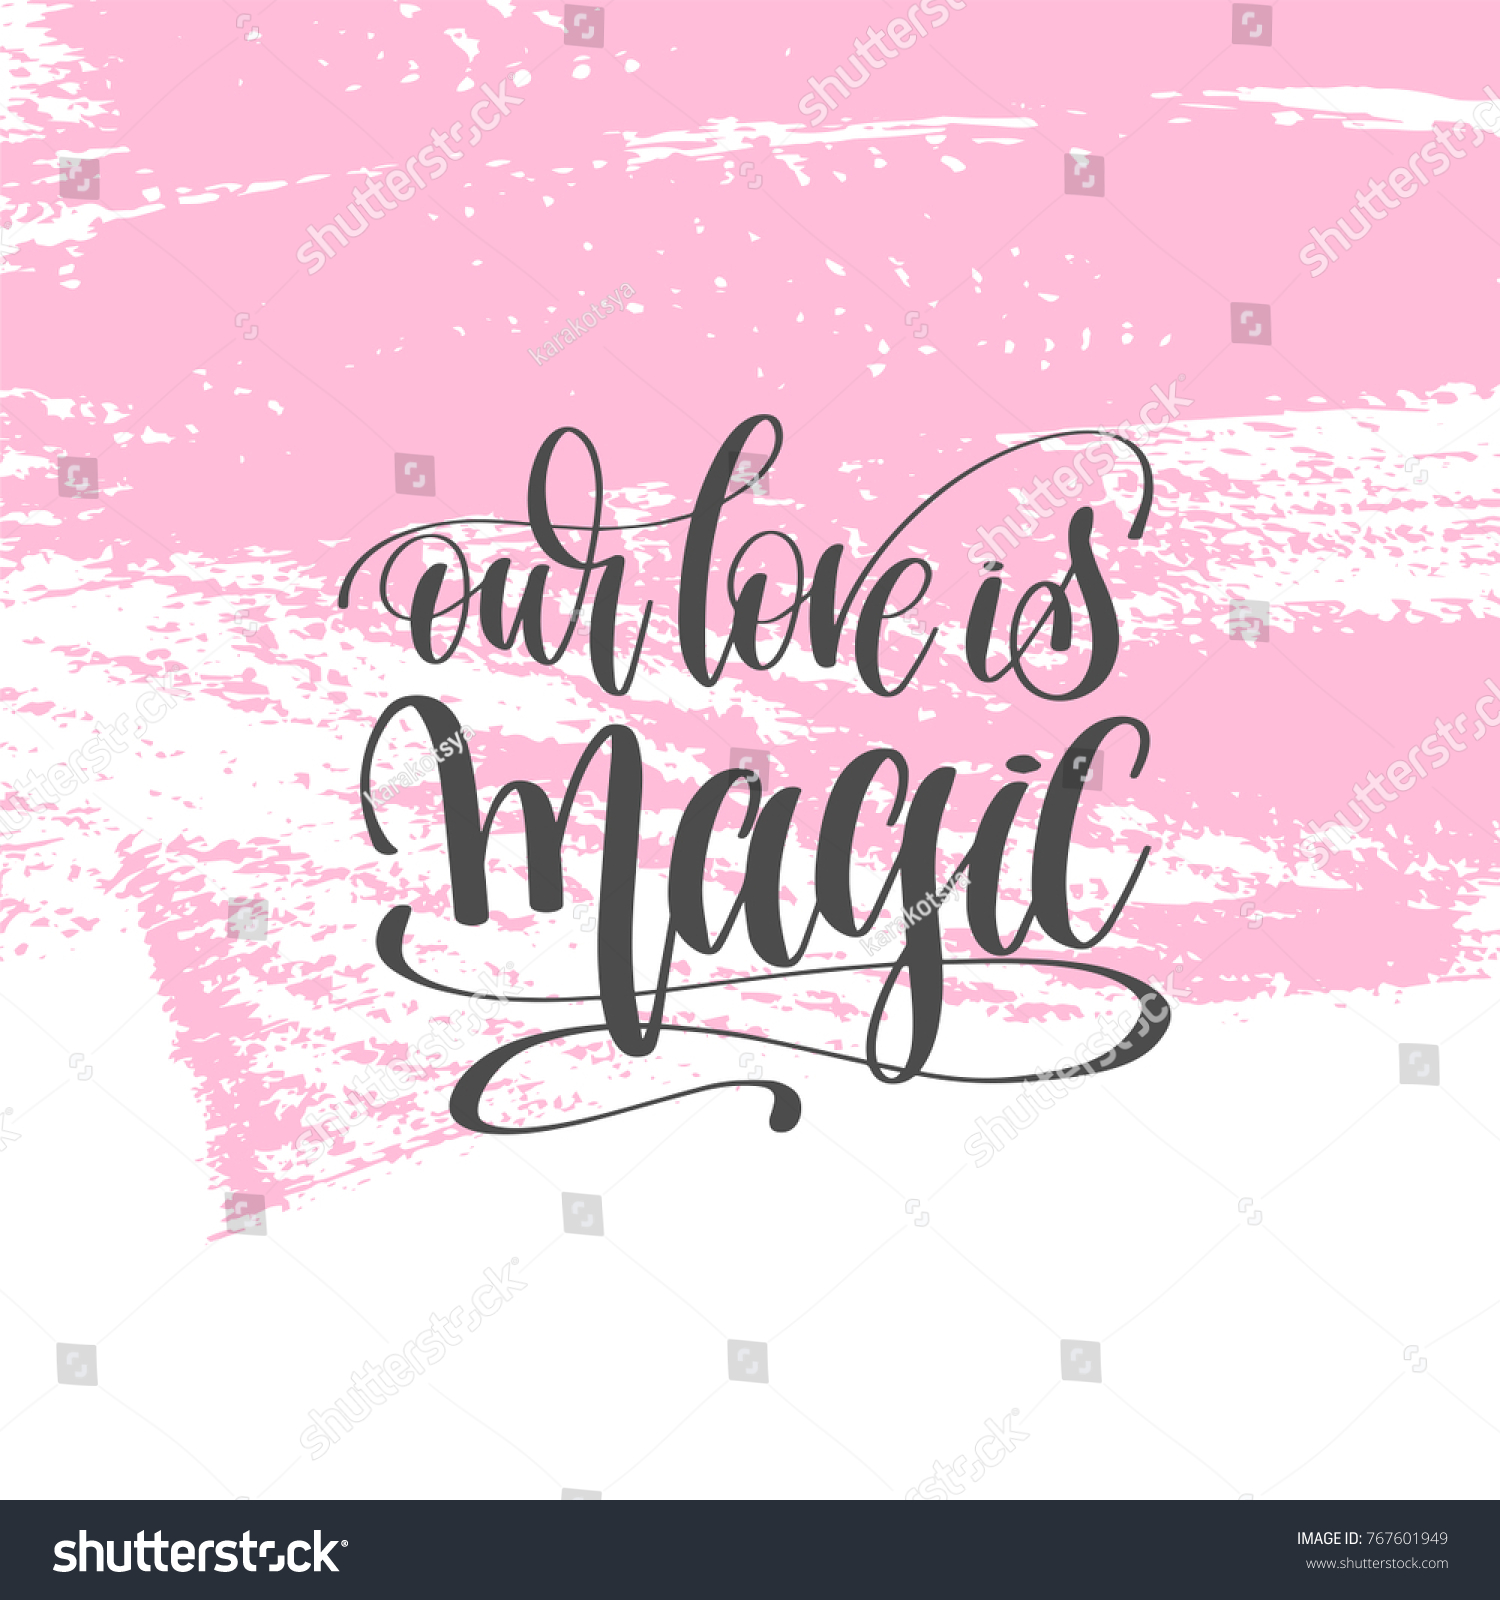 Our Love Is Magic Hand Lettering Poster On Pink Brush Stroke